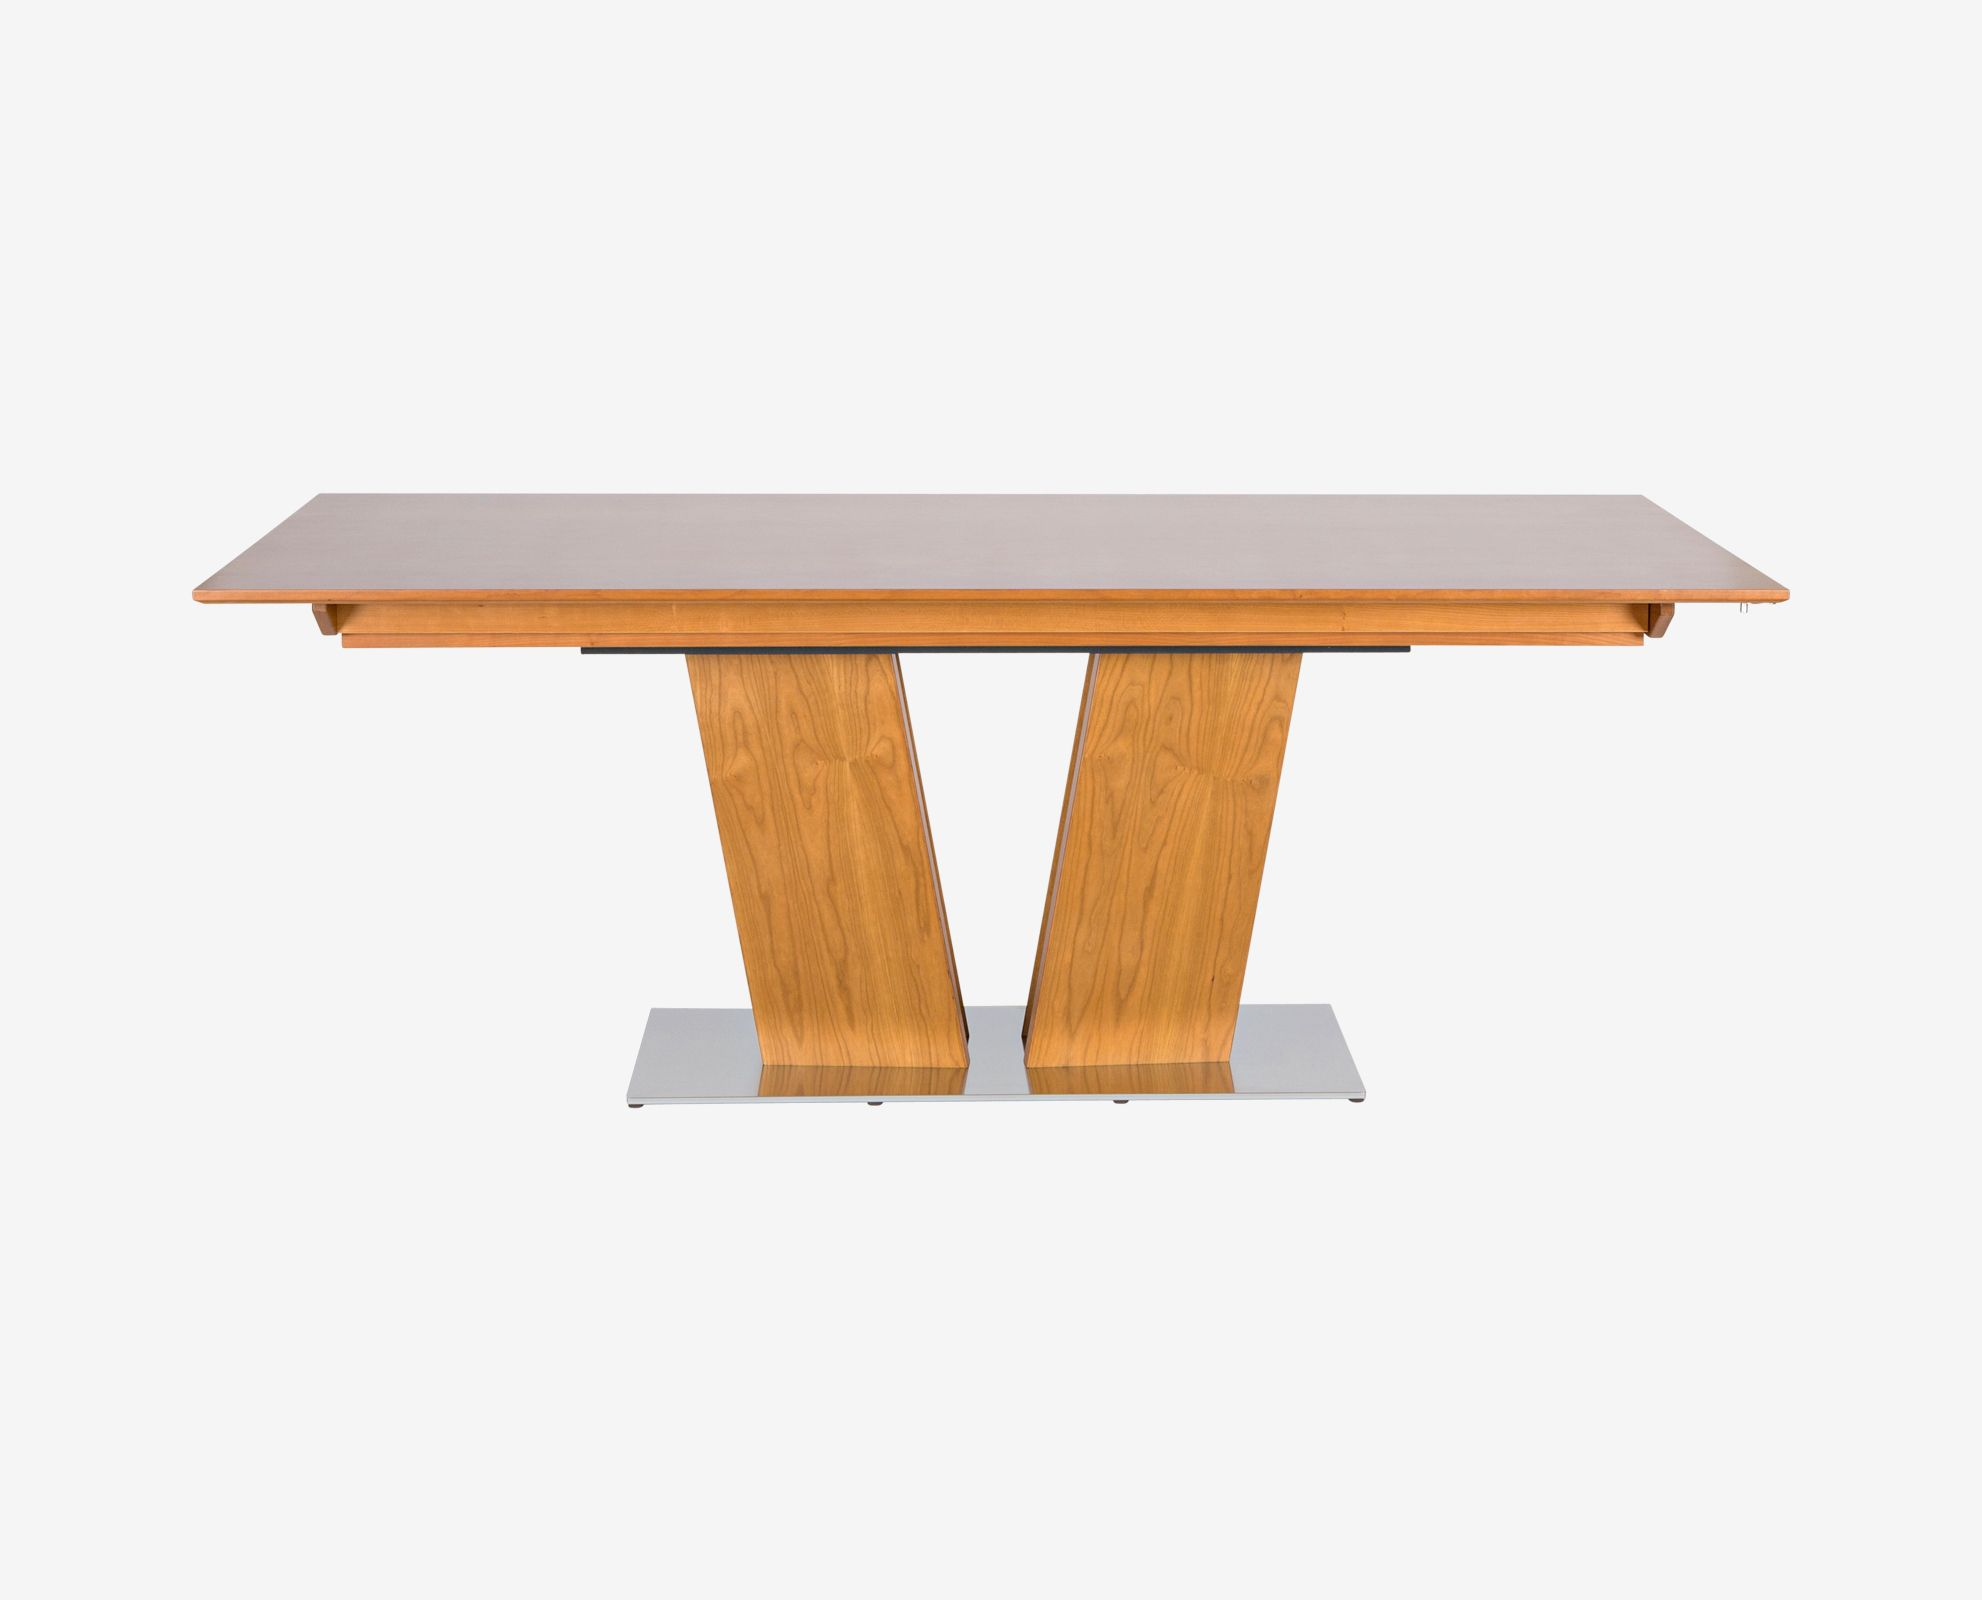 With A Dynamic Appearance The Hadsten Dining Table Features Sculptural V Shaped Base Undivided Tabletop Easily Reveals Hidden Extension Leaf At